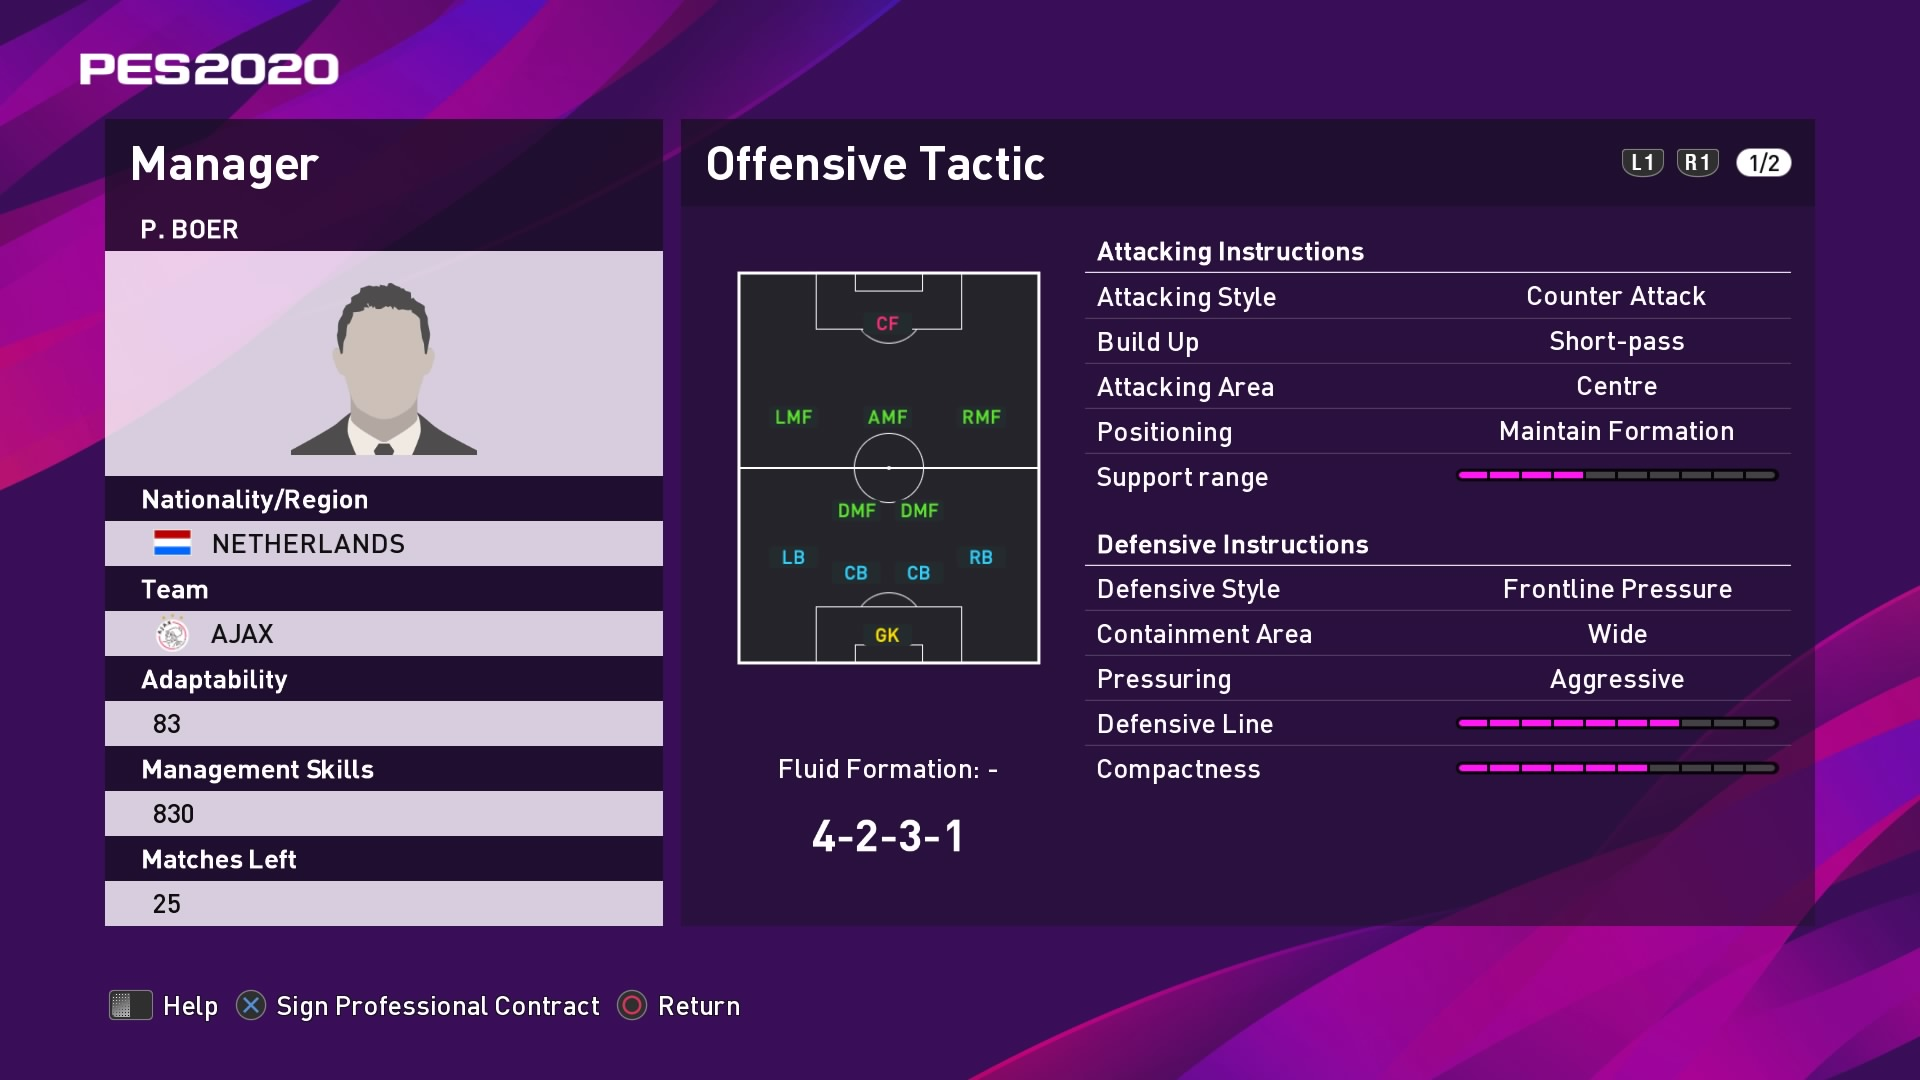 P. Boer (Erik ten Hag) Offensive Tactic in PES 2020 myClub